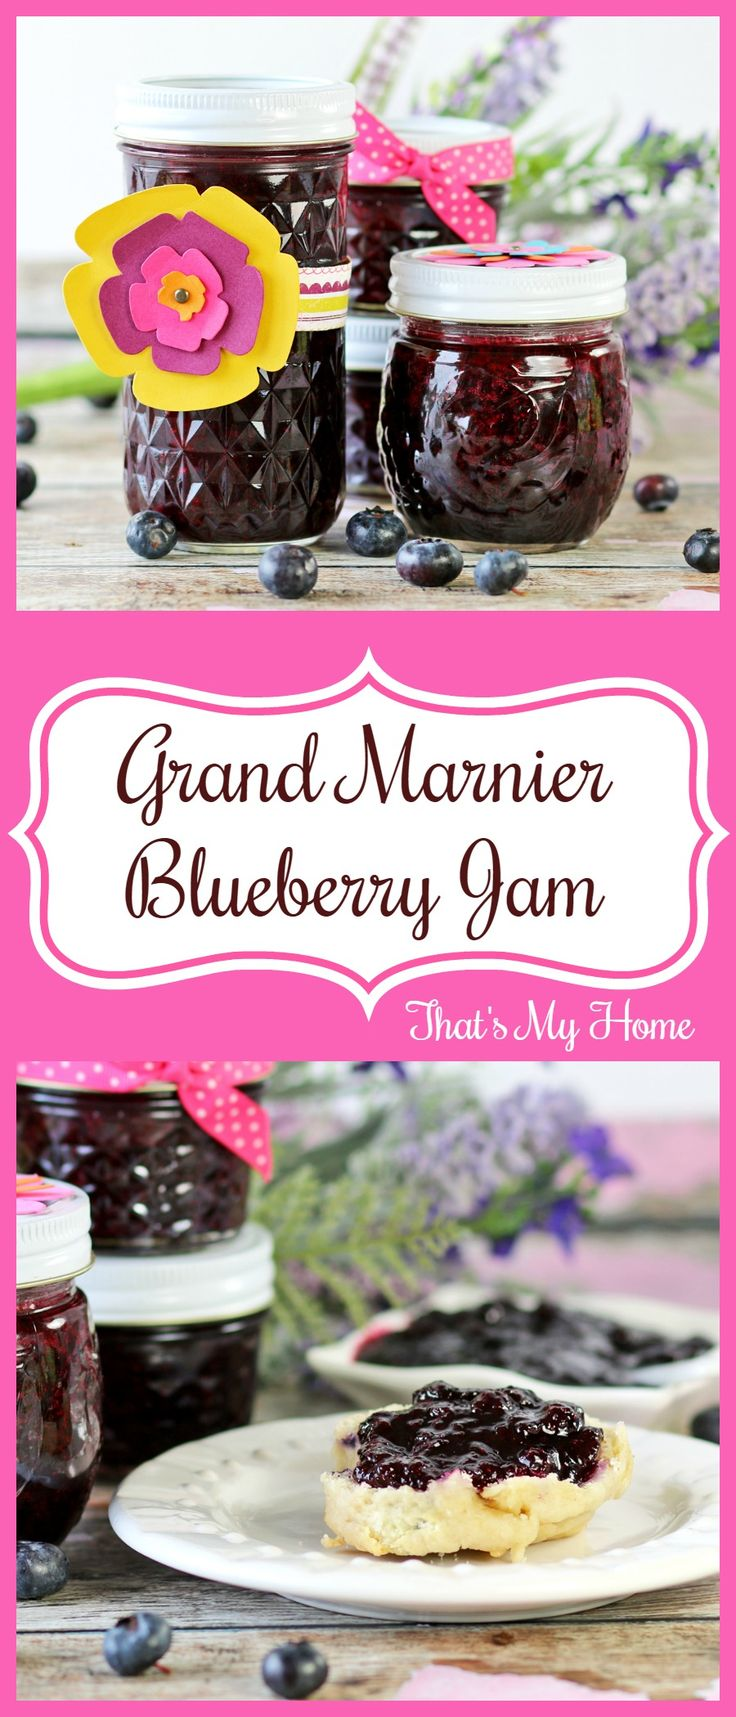 Grand Marnier Blueberry Jam - fresh picked blueberries made into jam with a hint of Grand Marnier #FreshFromFlorida #ad